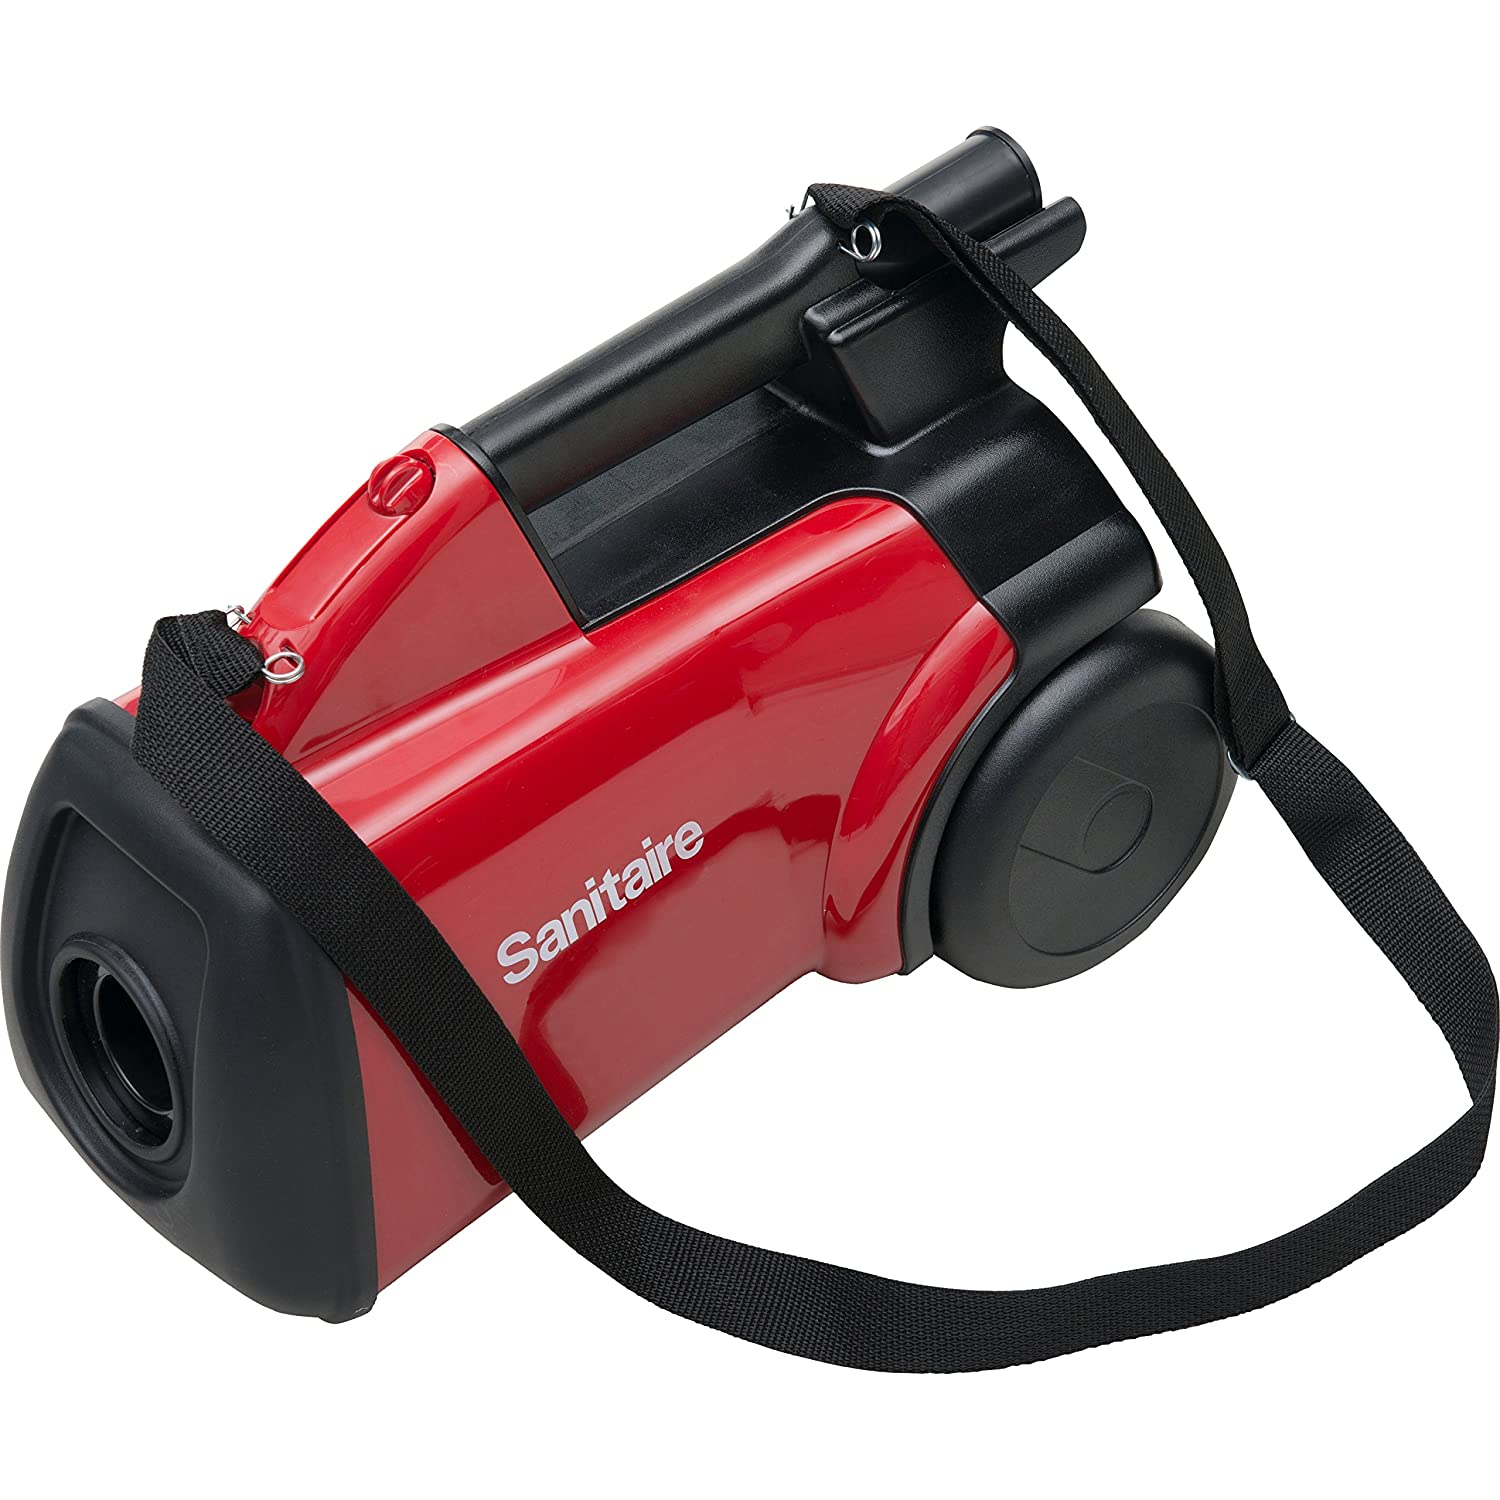 Sanitaire SC3683B Commercial Canister Vacuum, Red: Household Canister  Vacuums: Amazon.com: Industrial & Scientific